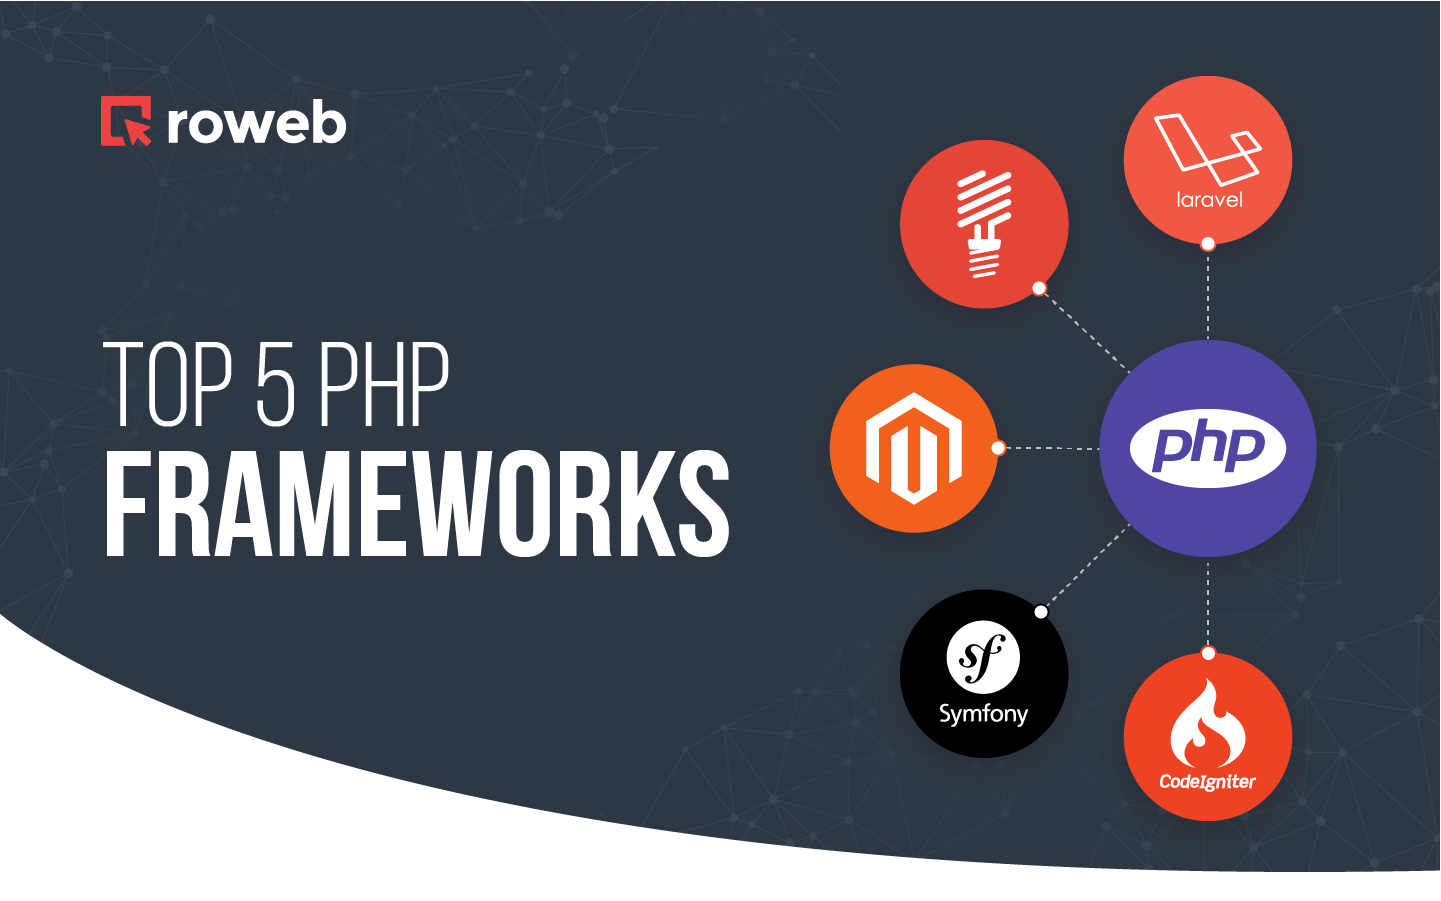 PHP Frameworks are the right choice for developing complex